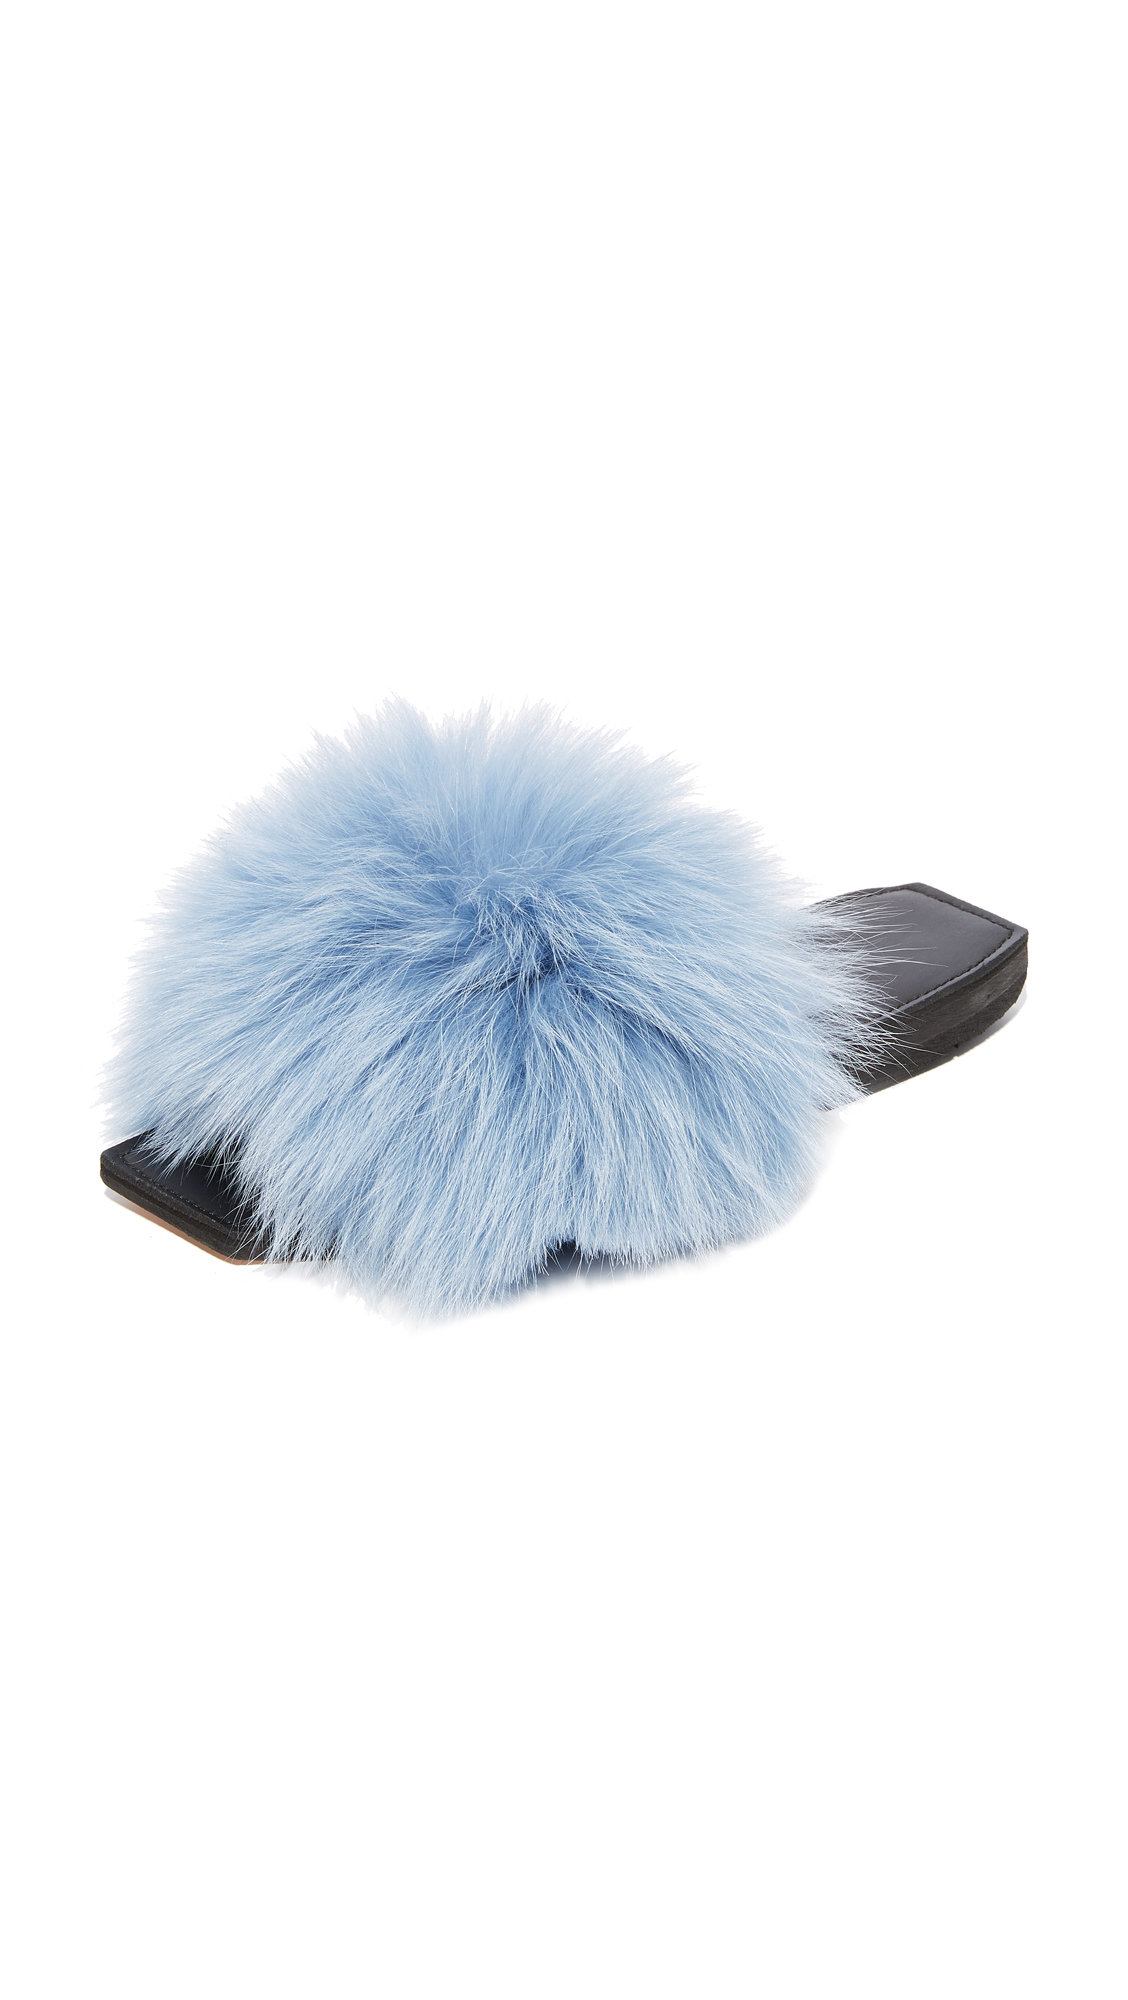 Parme Marin Furry Baby Slide - Blue Fur/Black